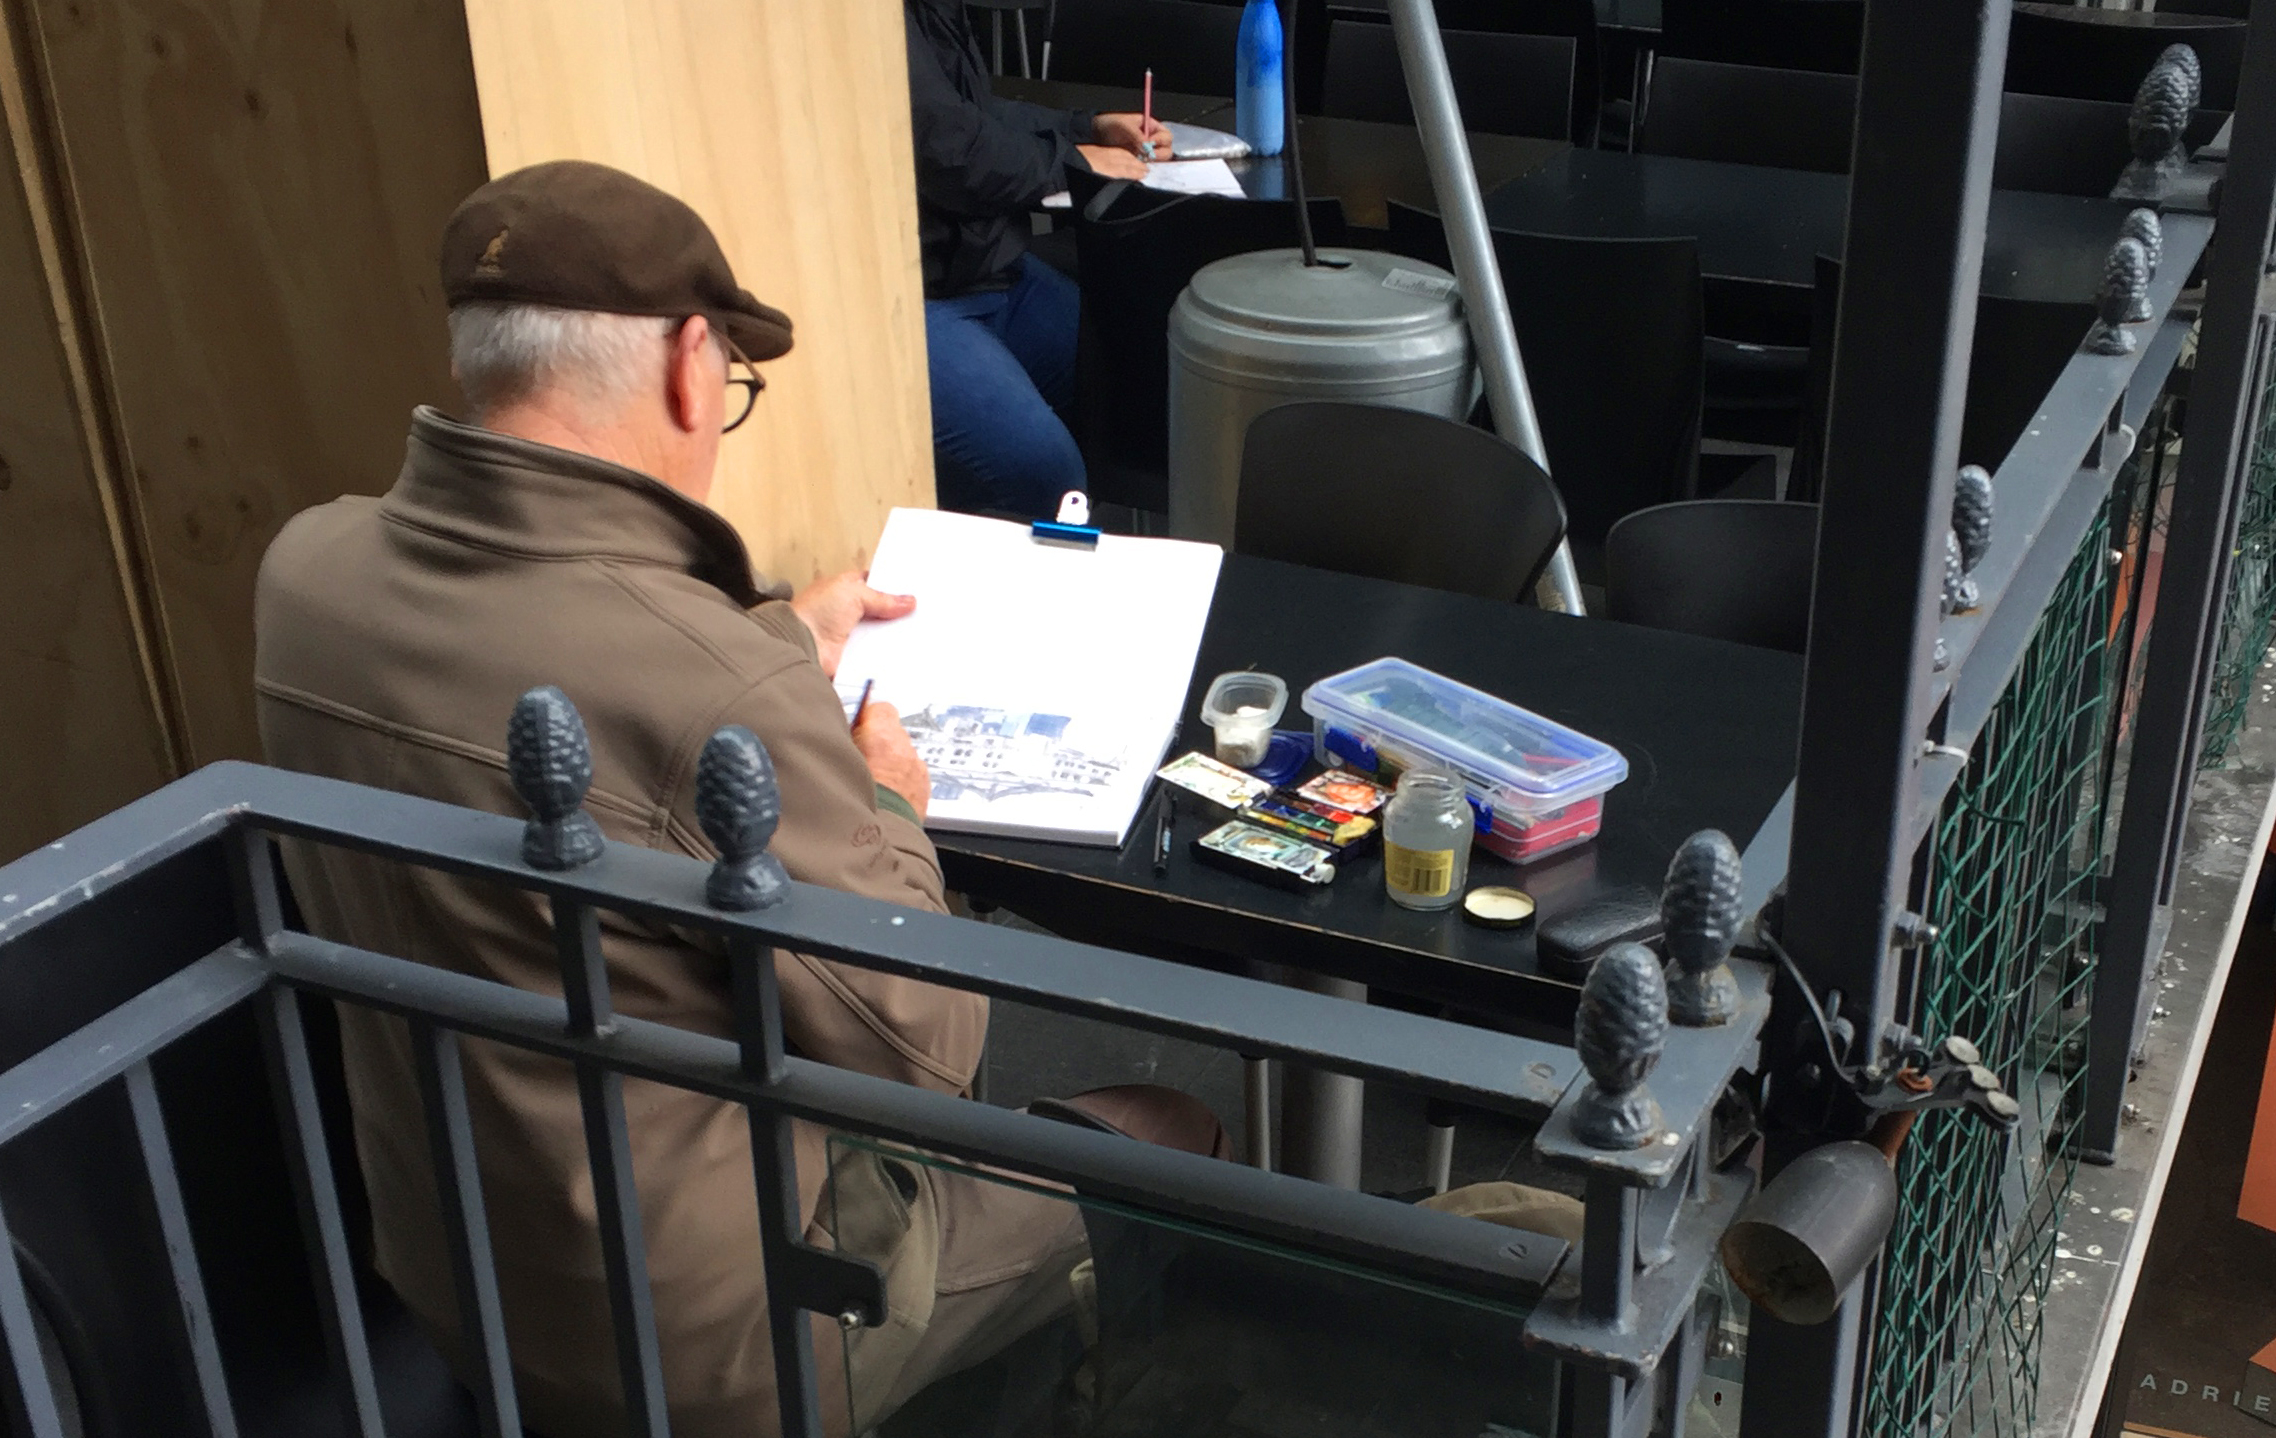 Finding a table to work at is a real treat on The Big Draw.